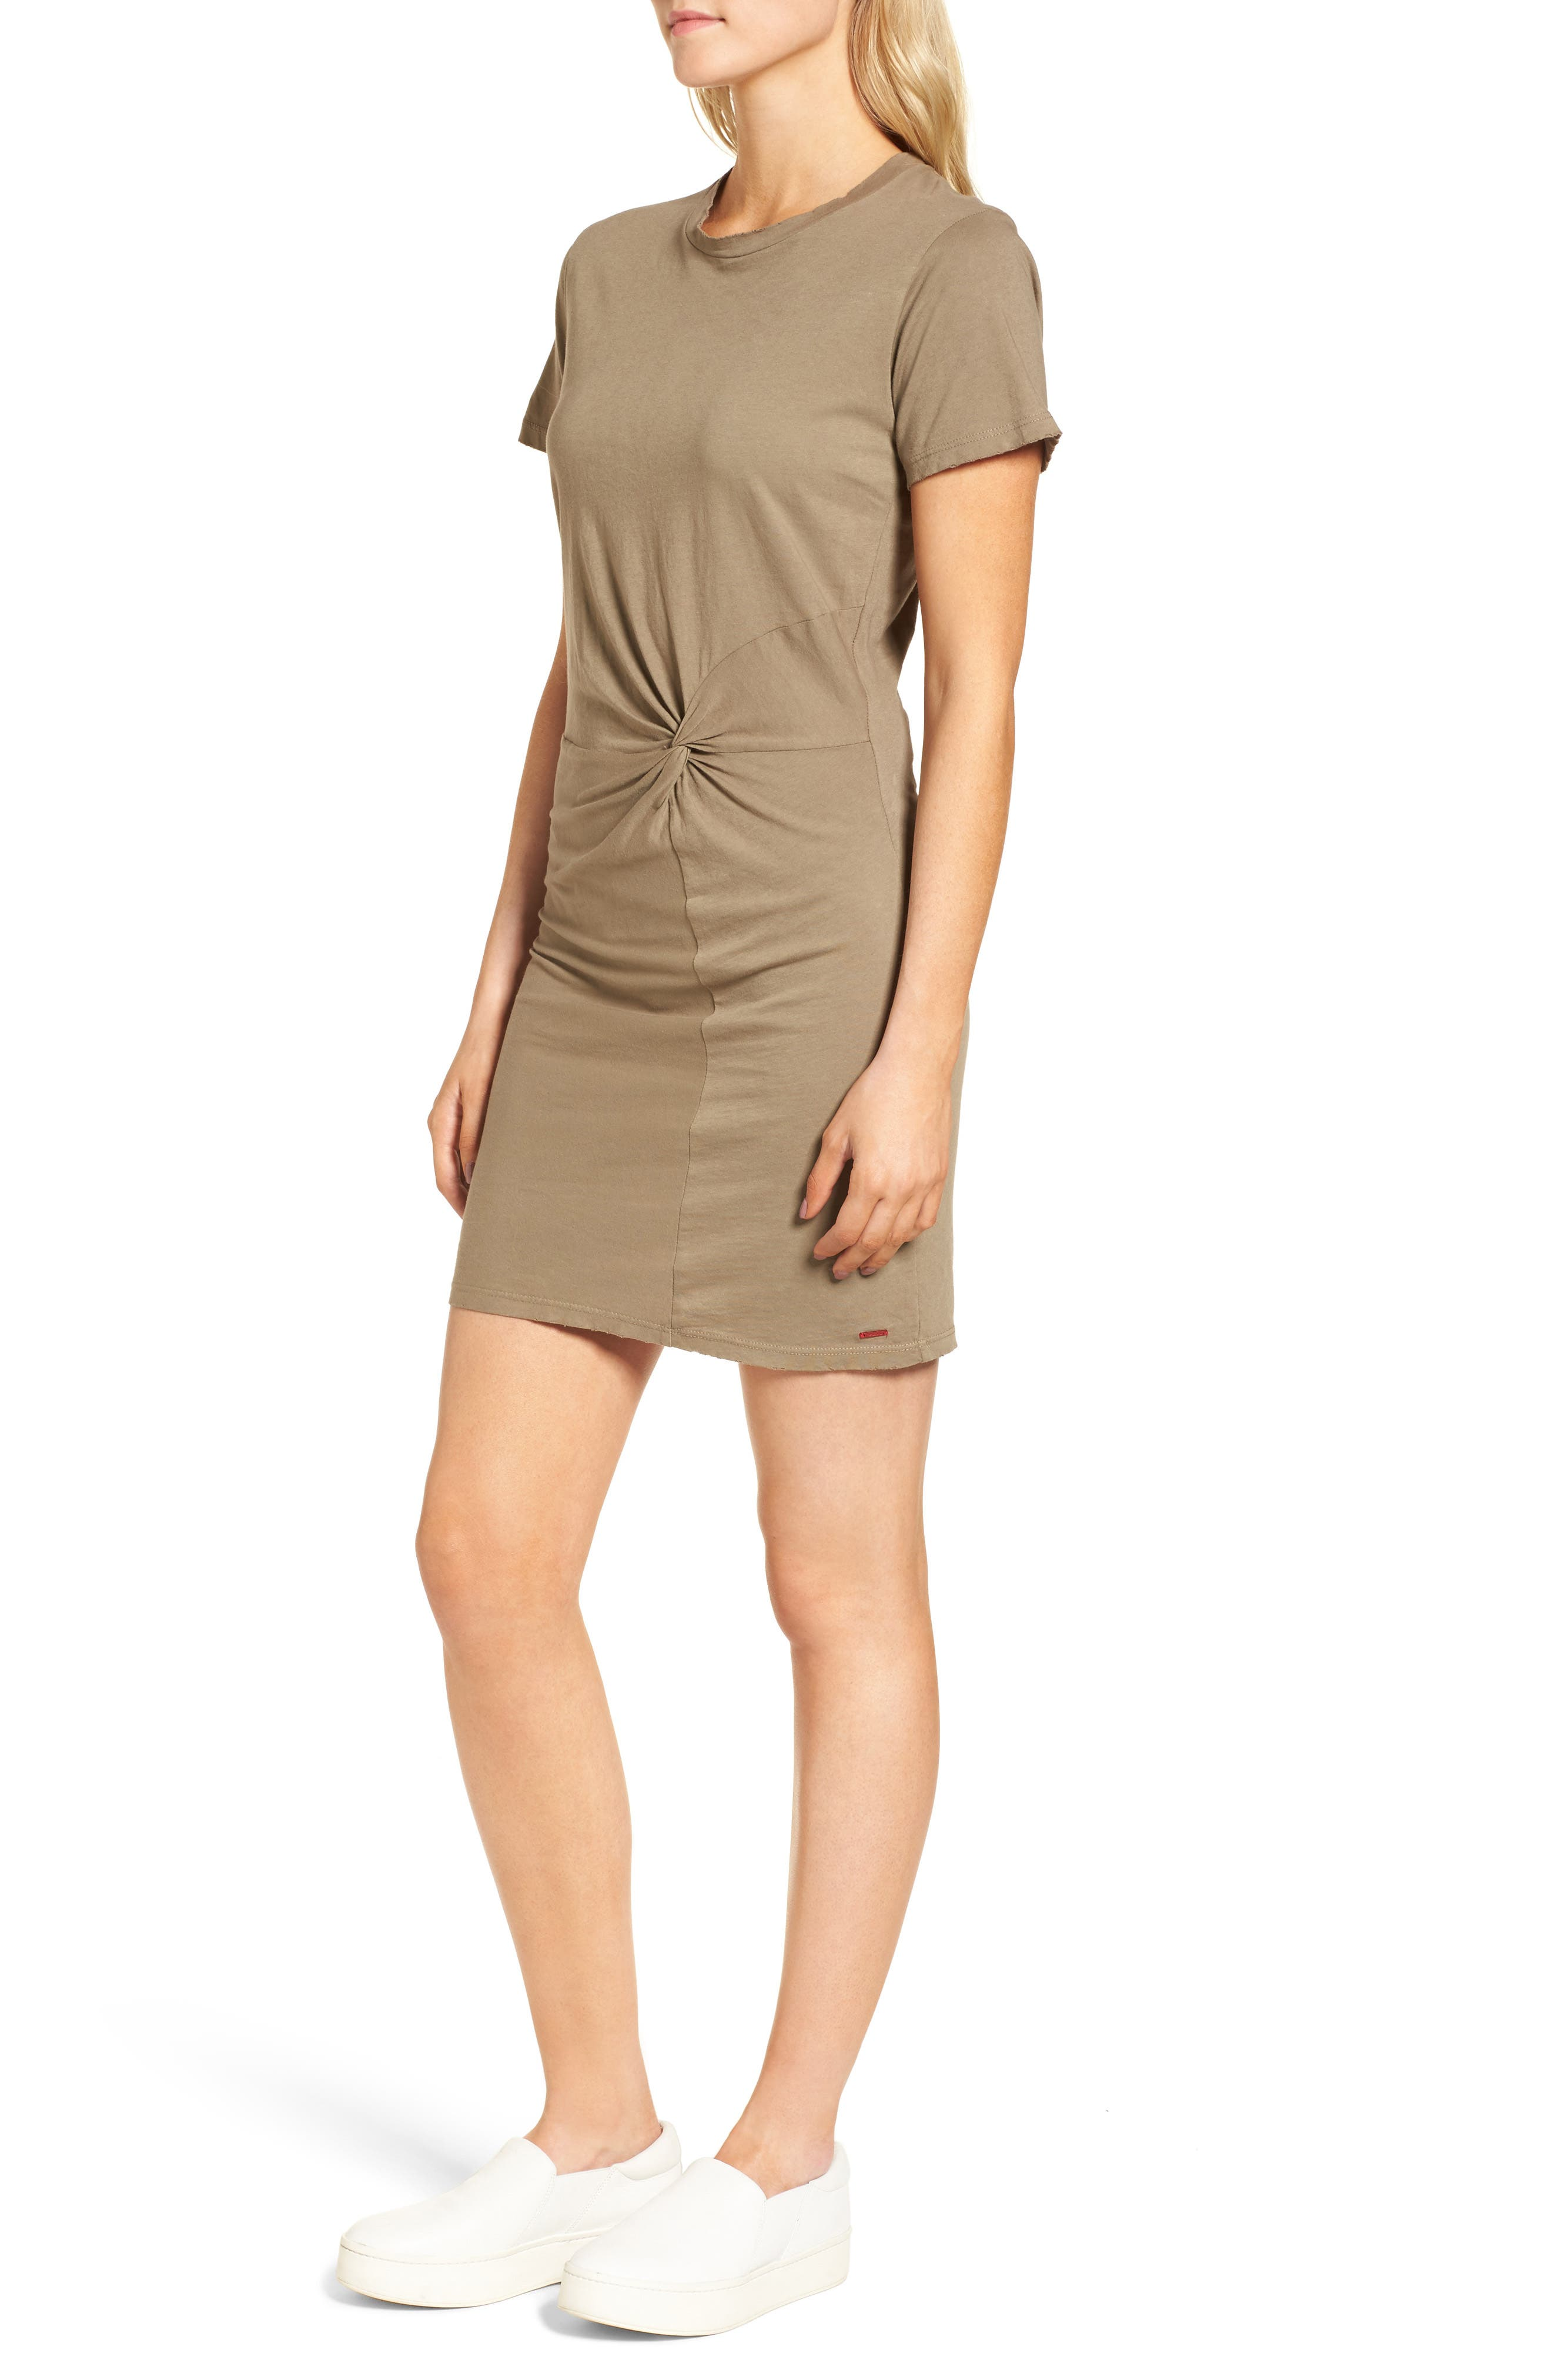 Jazz Knotted T-Shirt Dress,                             Alternate thumbnail 3, color,                             Army